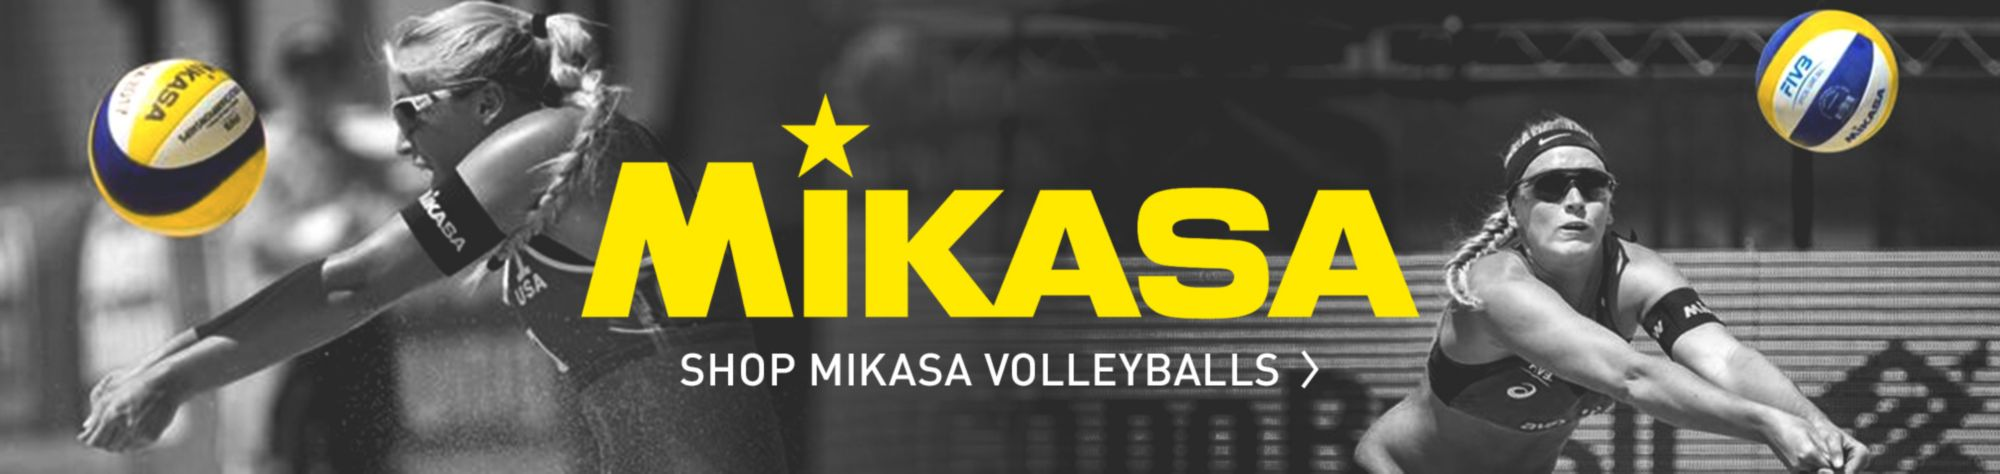 Shop Mikasa Volleyballs Now